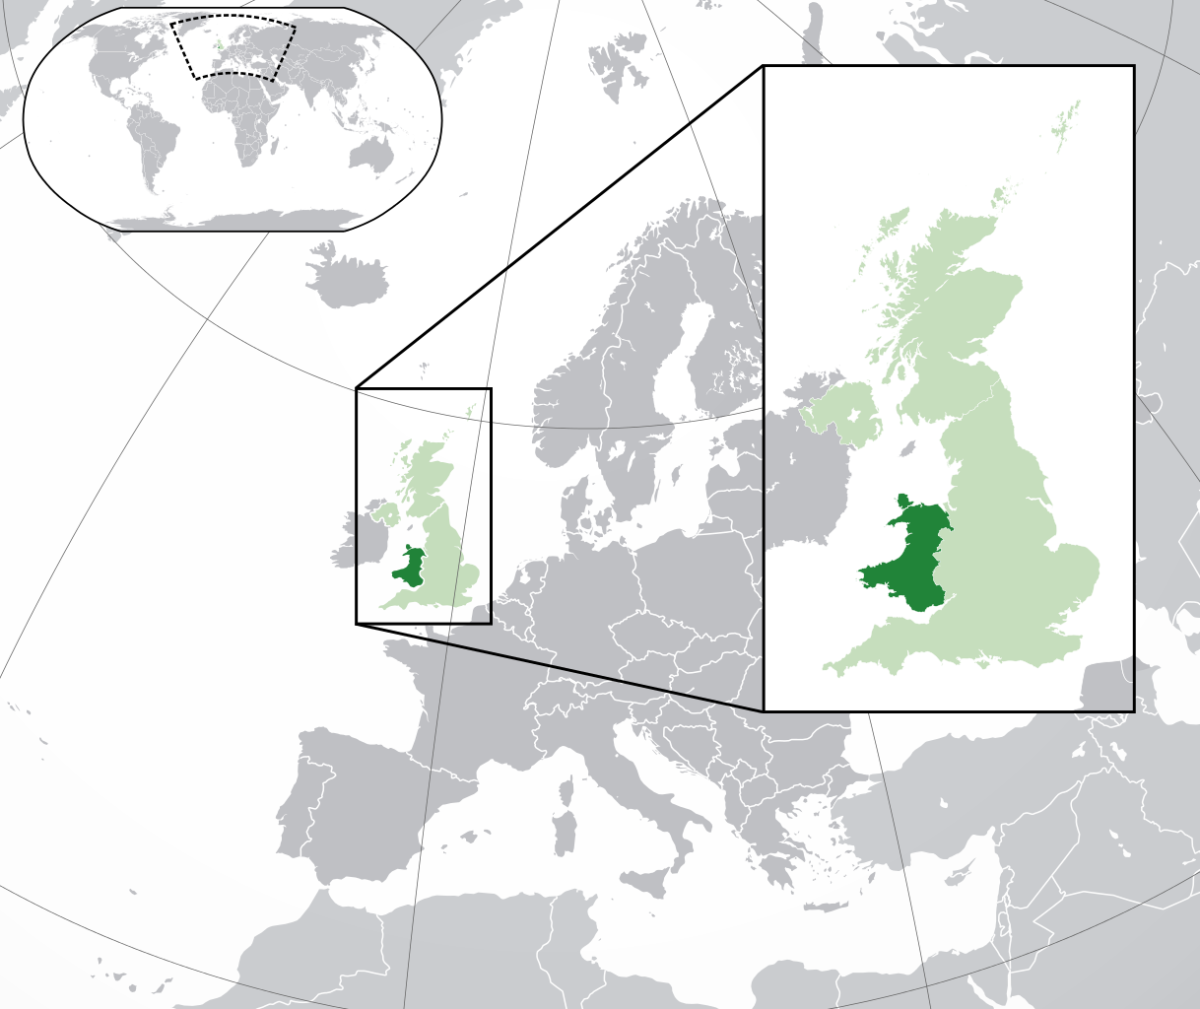 Location of Wales in the UK and Europe